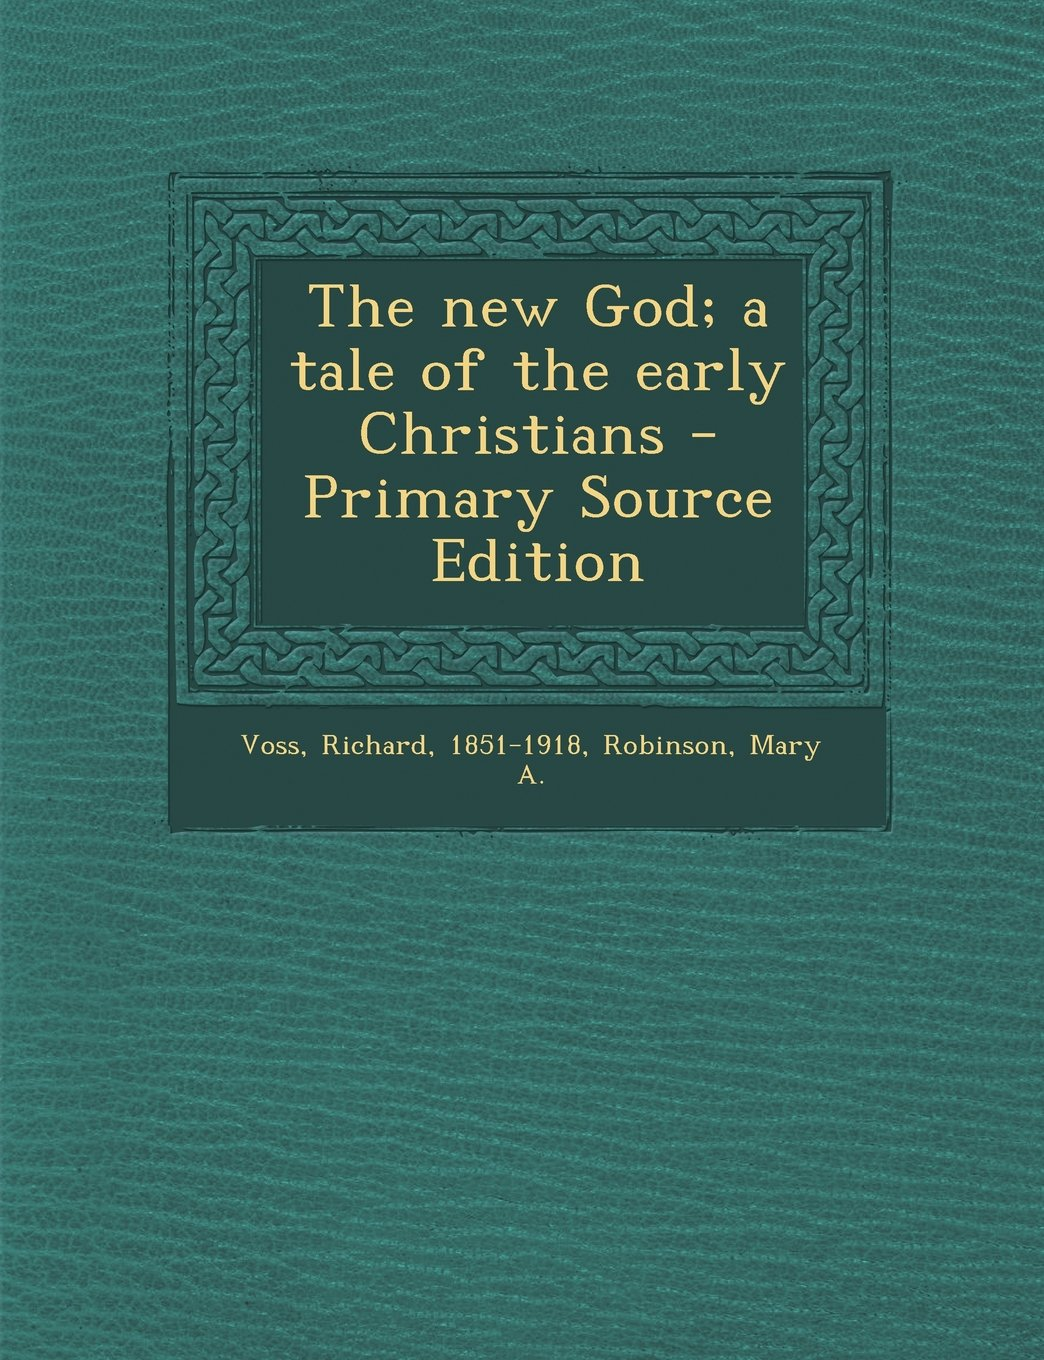 Download The new God; a tale of the early Christians - Primary Source Edition PDF